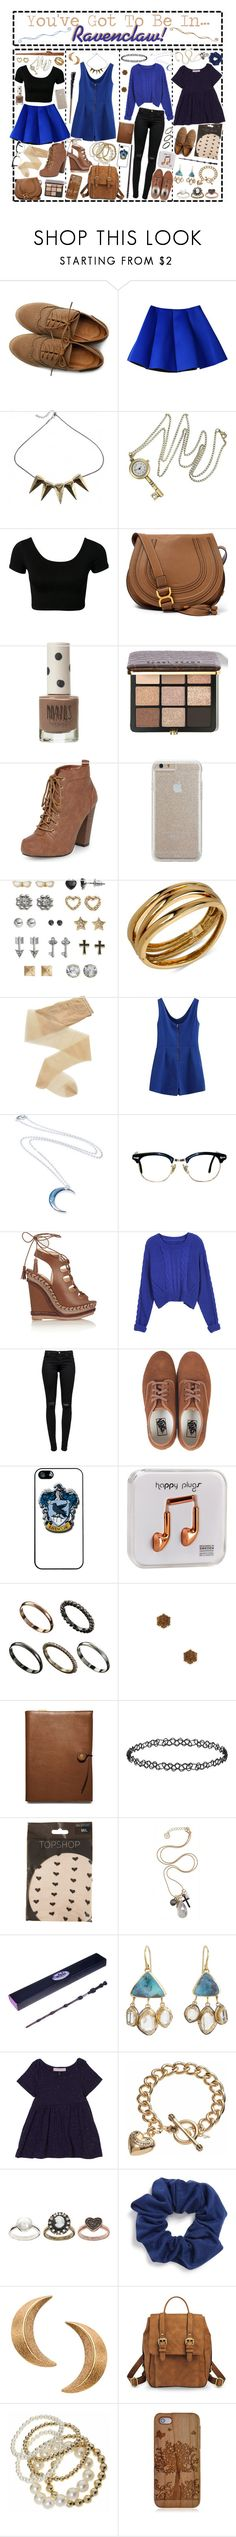 """You've Got To Be In…Ravenclaw!"" by i-get-a-little-bit-breathless ❤ liked on Polyvore featuring Ollio, CO, Chloé, Topshop, Bobbi Brown Cosmetics, Dorothy Perkins, Case-Mate, SO, Robert Lee Morris and Fogal"